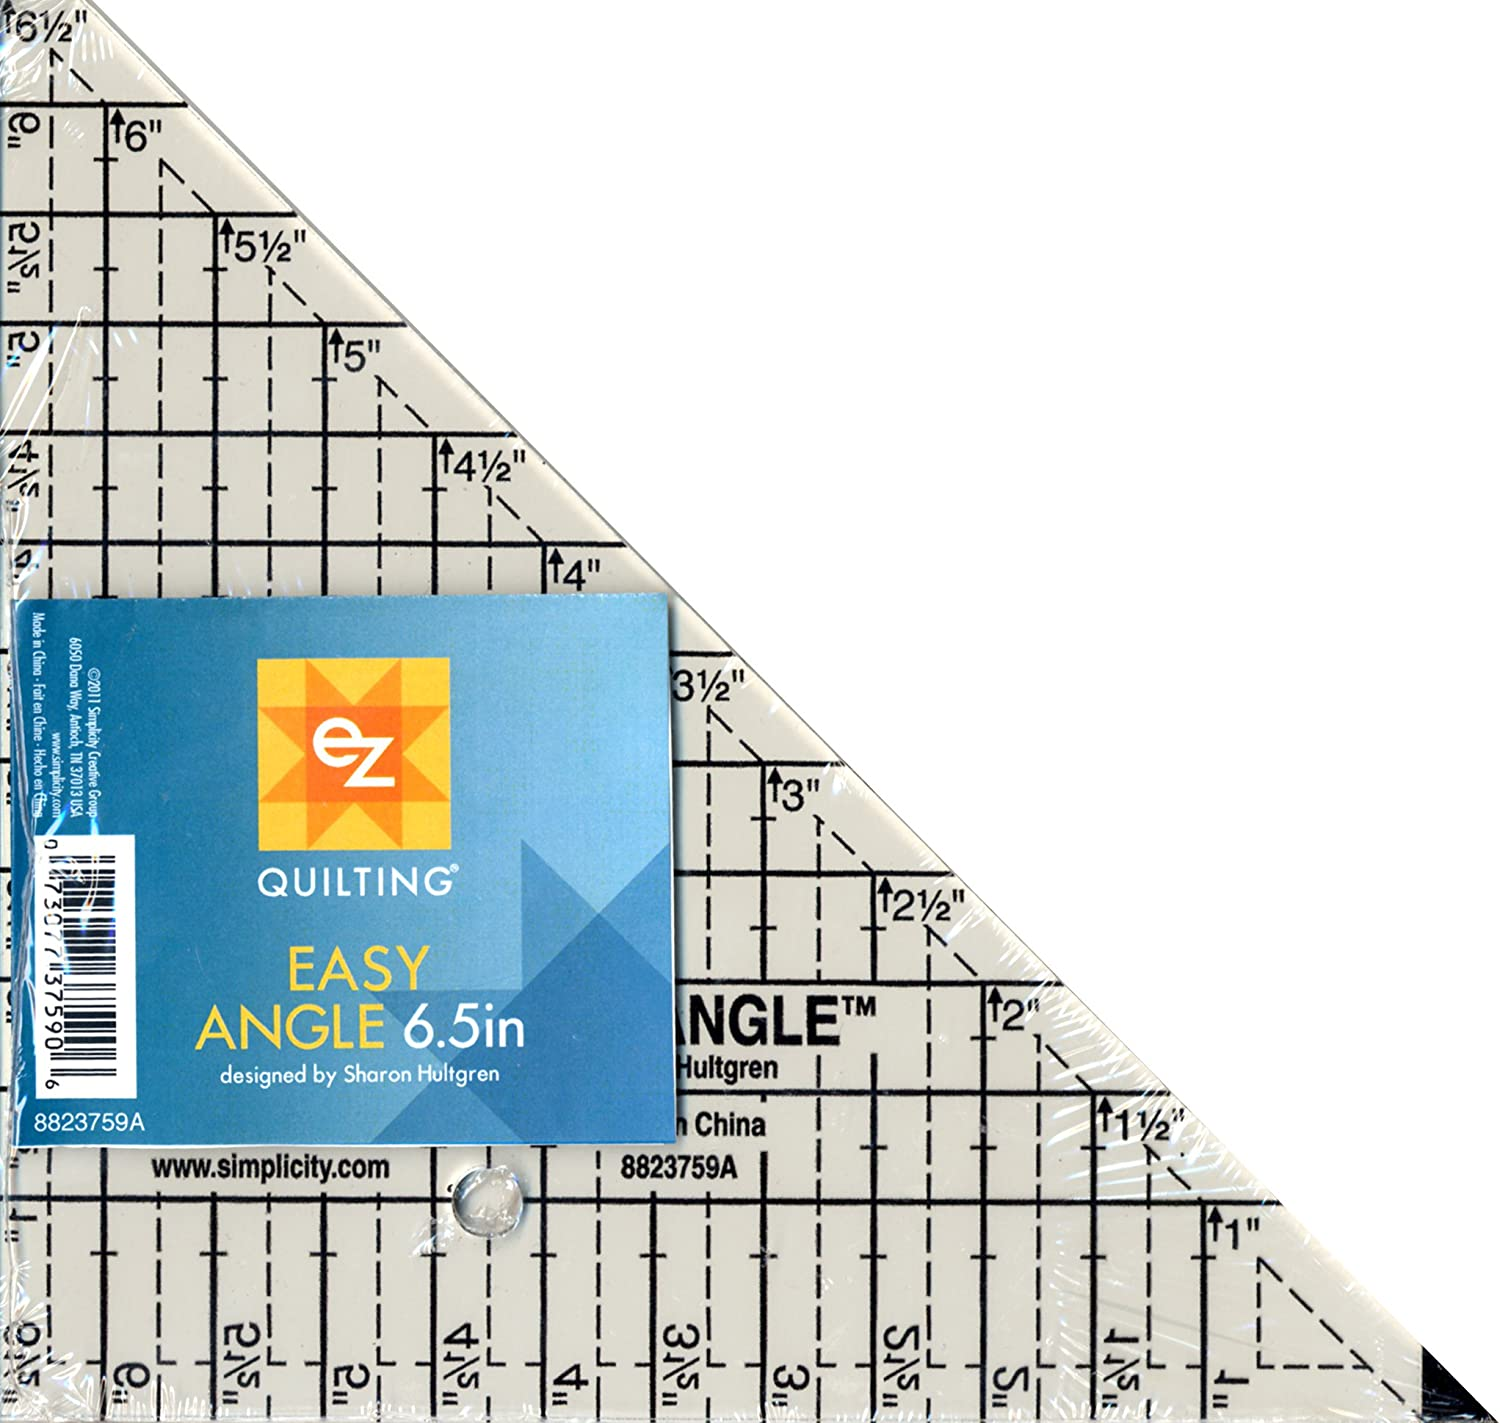 EZ Quilting Easy Angle Acrylic Template, 6.5-inch Simplicity 8823759